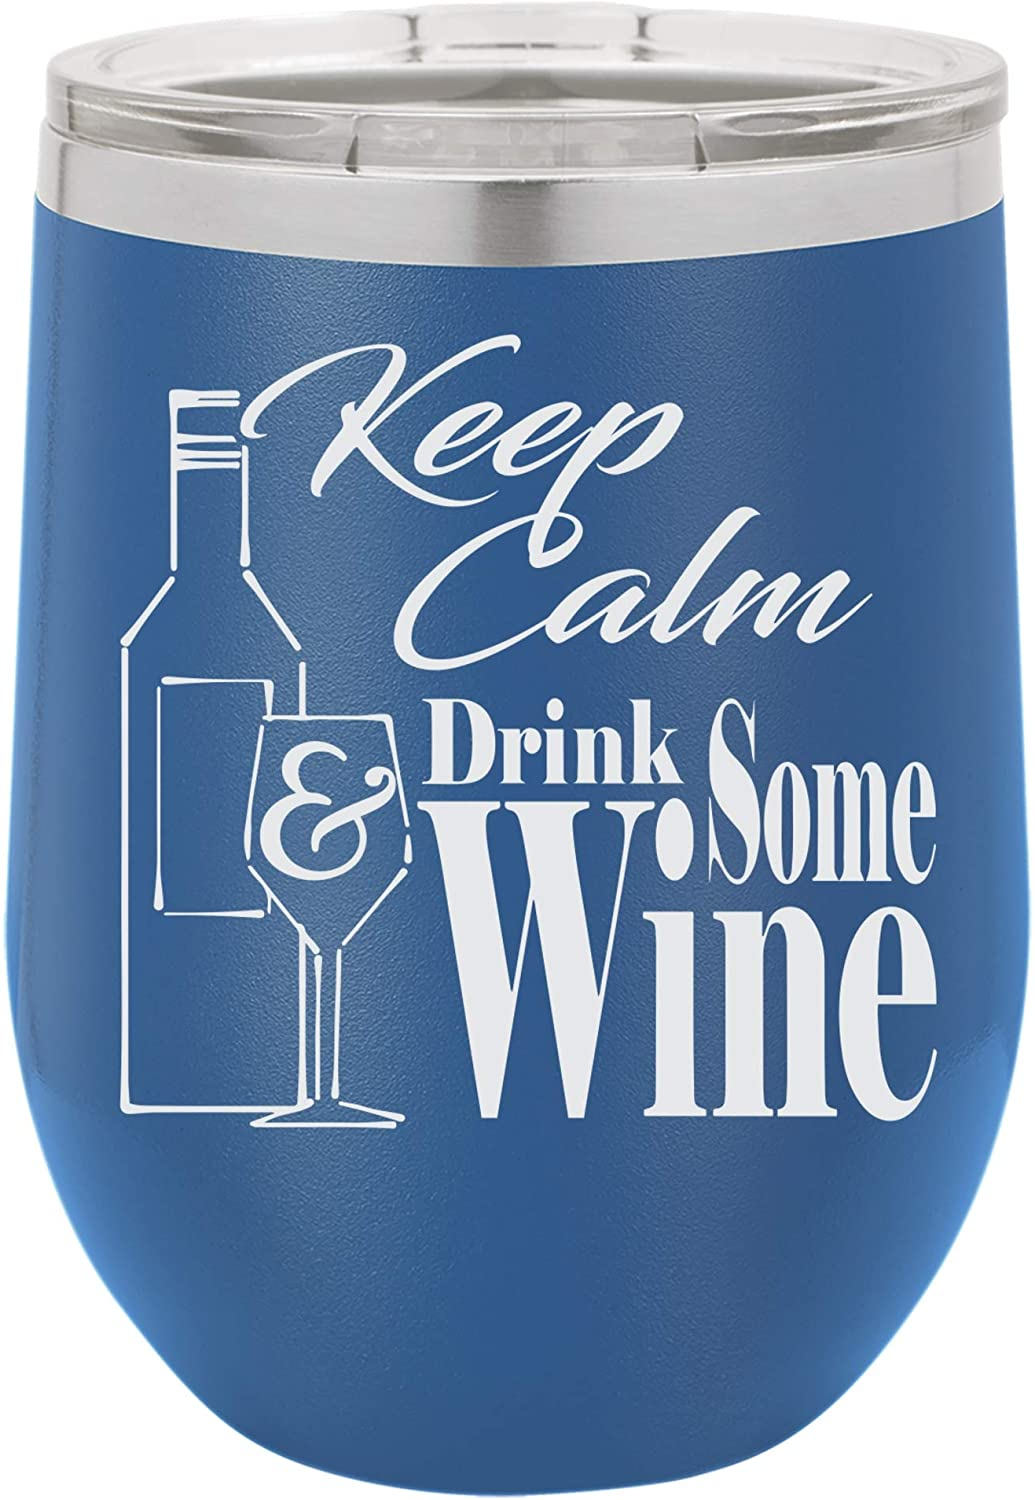 Keep Calm & Drink Some Wine Laser Engraved Insulated Stainless Steel Wine Glass Tumbler with Lid, 12 Oz, Blue